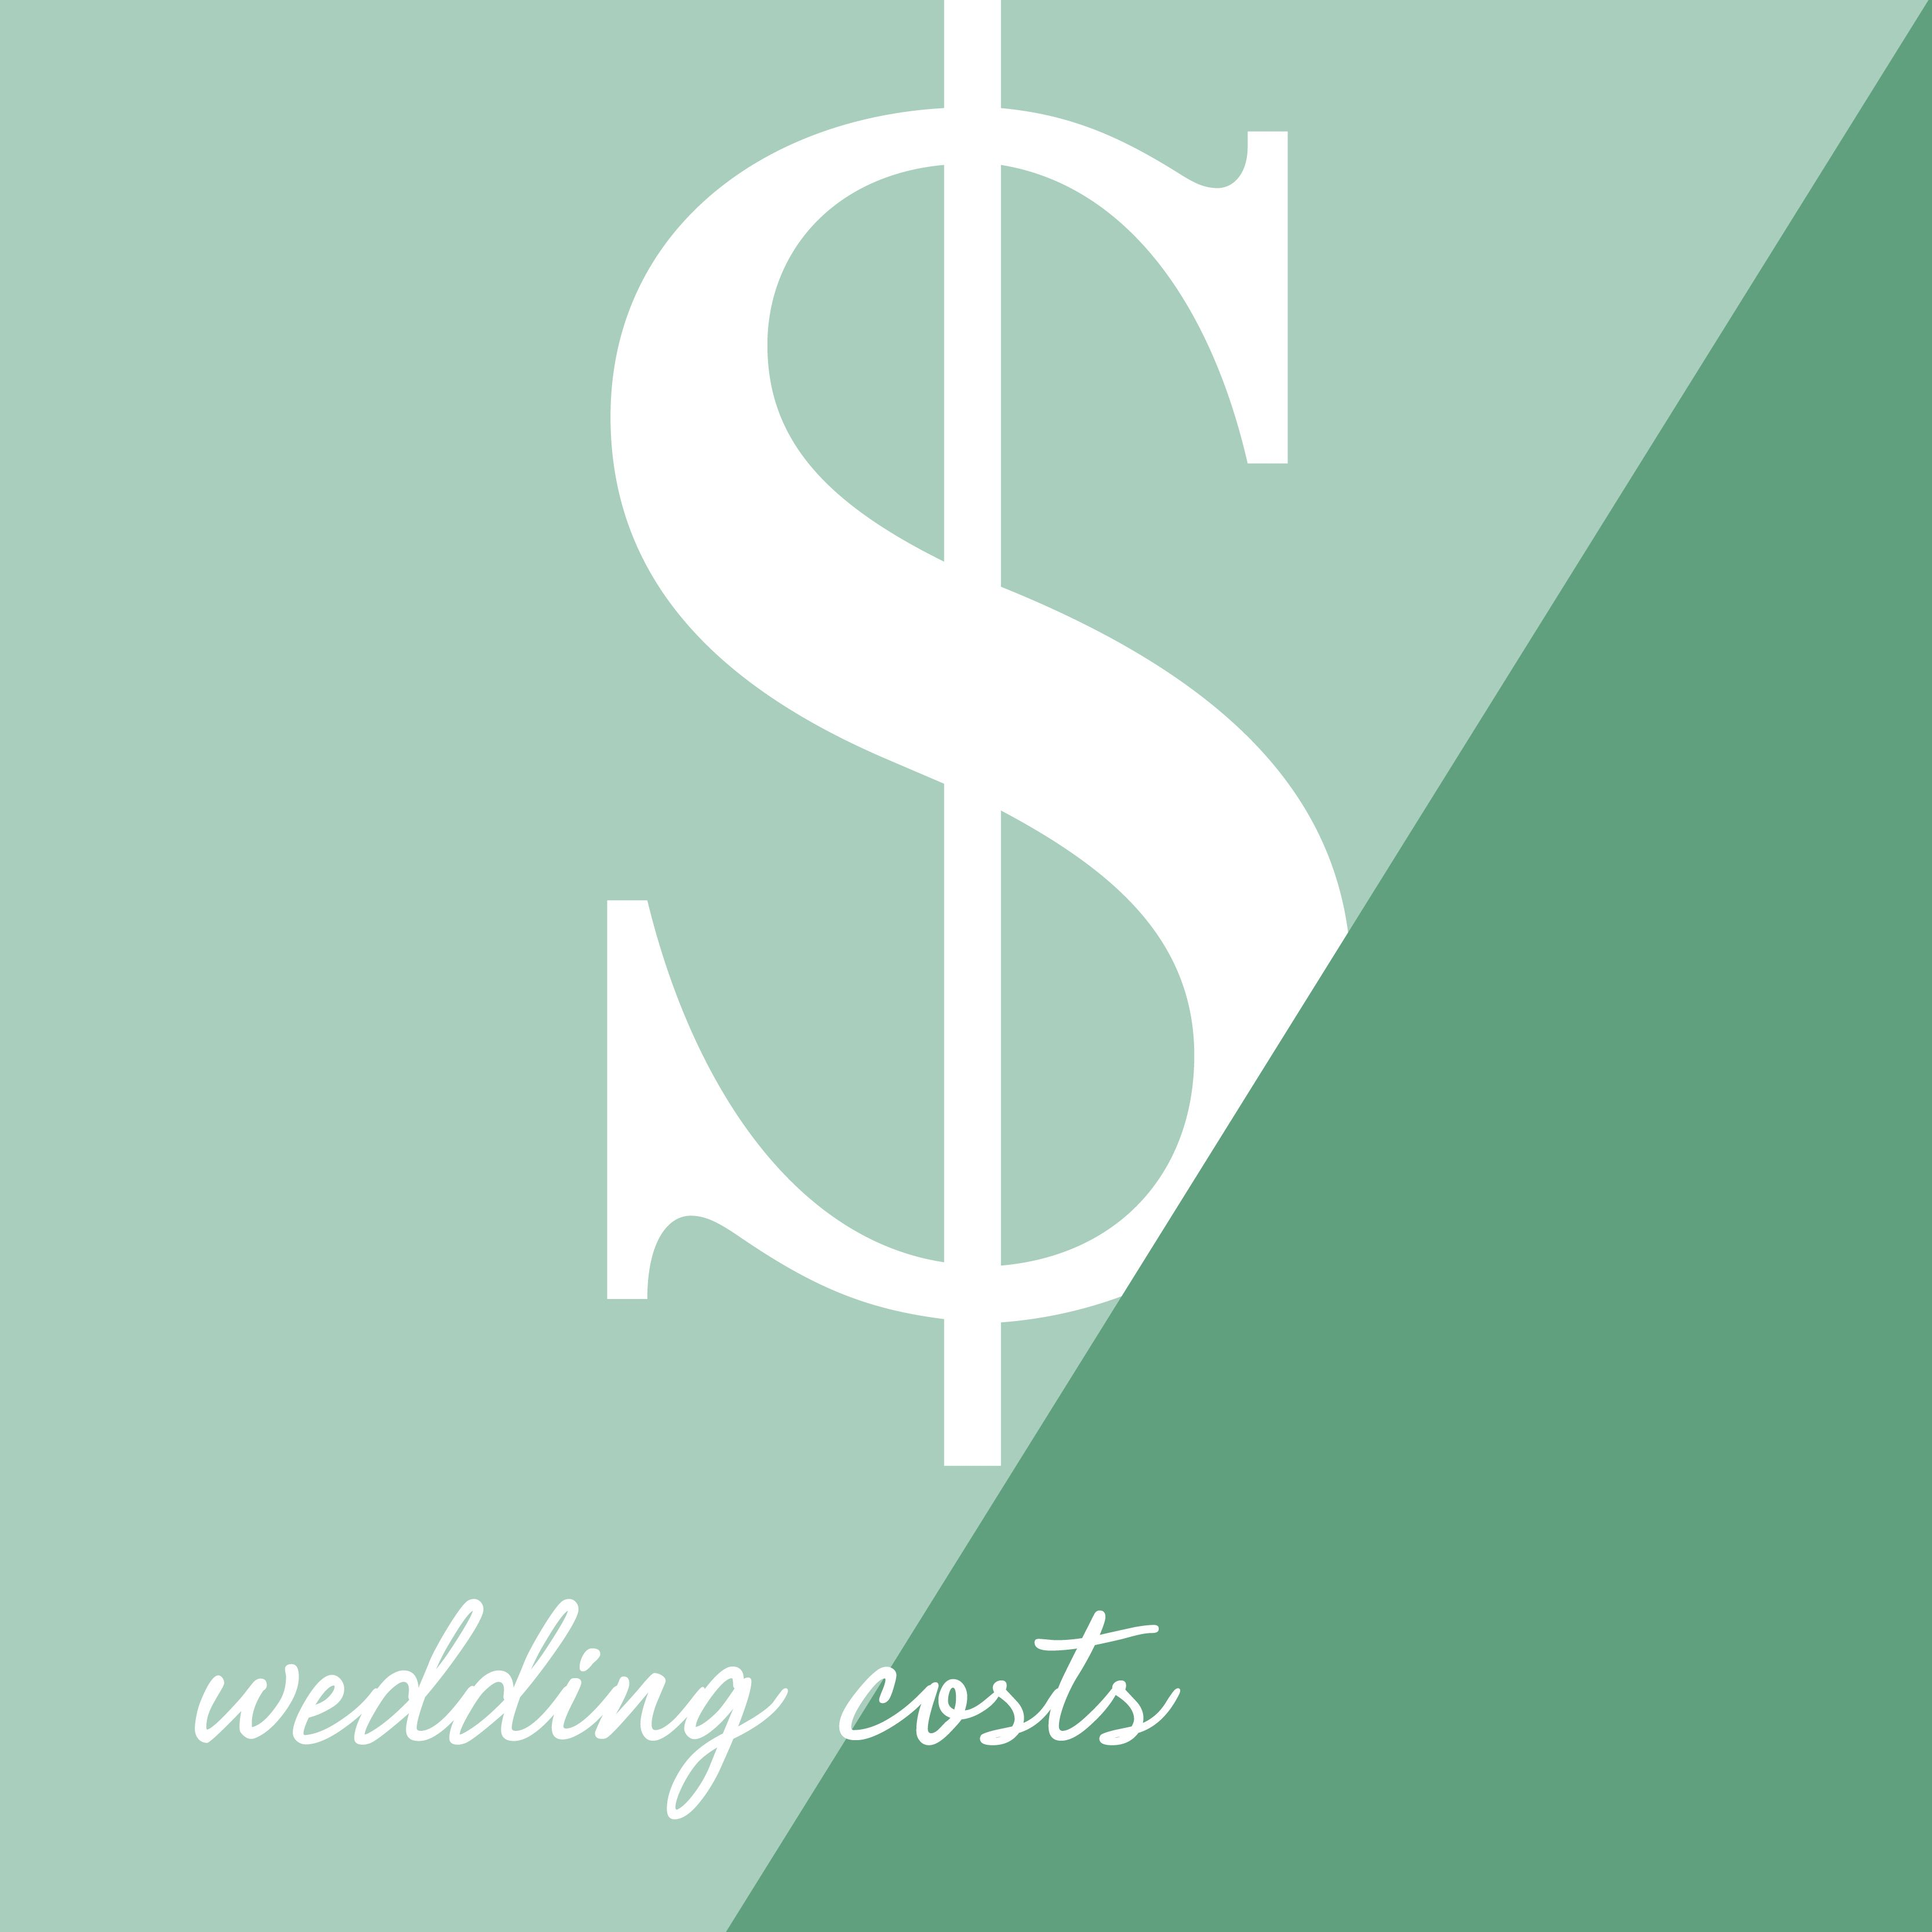 Average Wedding Costs 2015.Here S How Much The Average Wedding In 2018 Cost And Who Paid